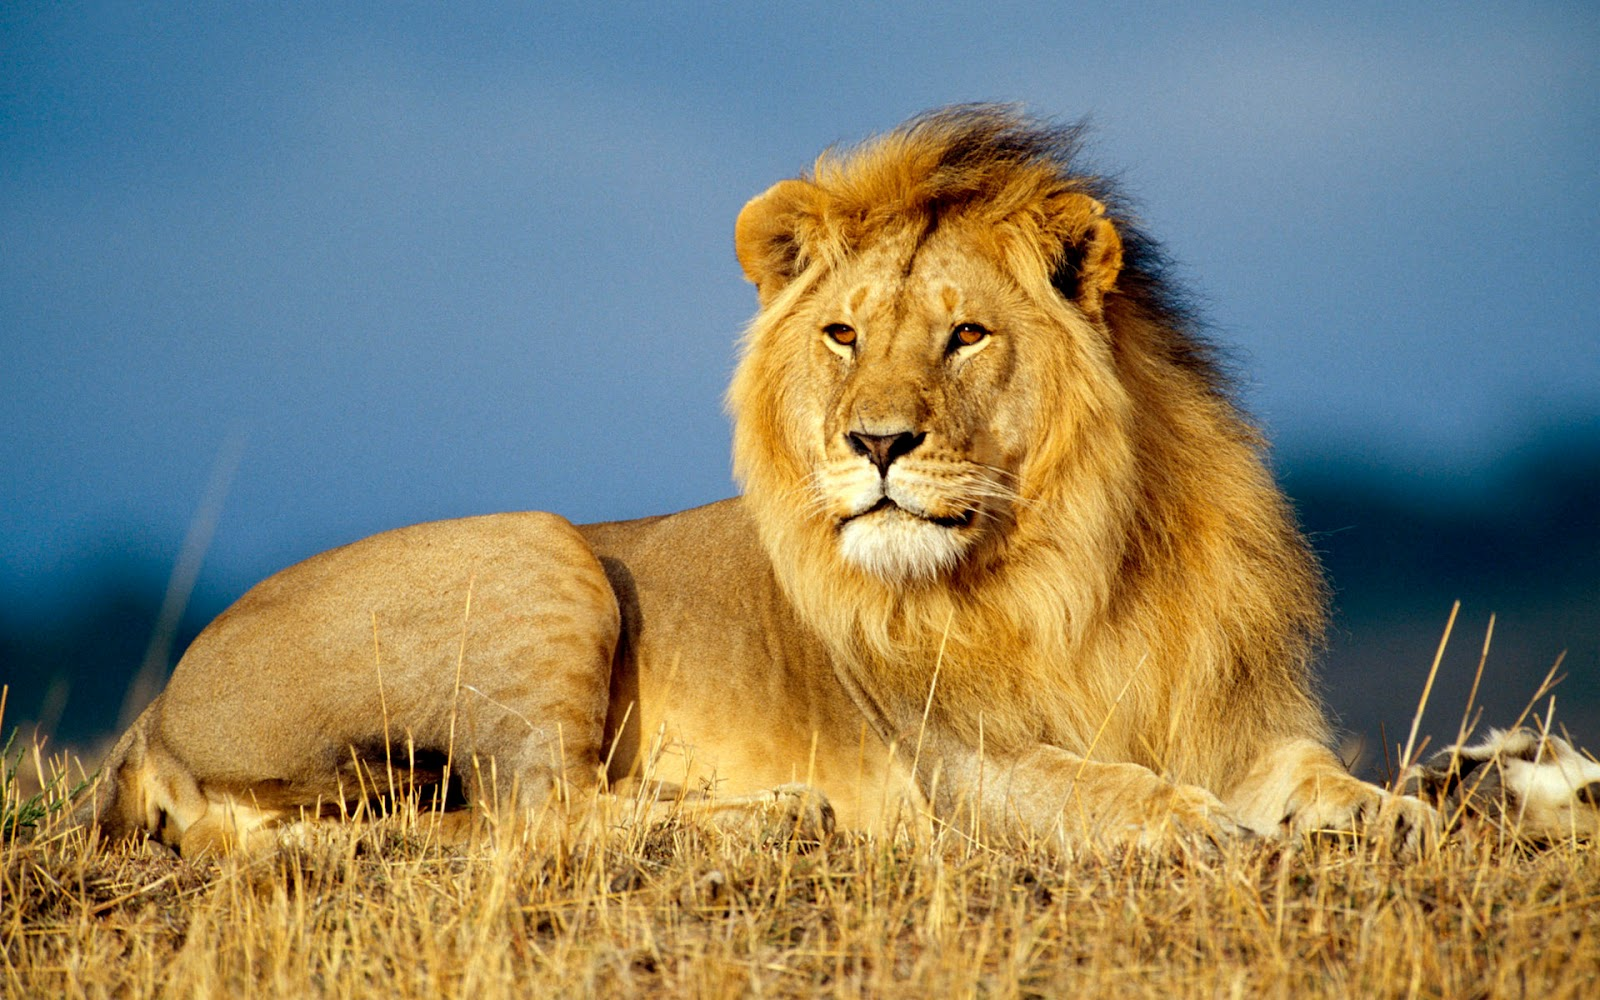 Lion HD Wallpapers African Lions Pictures - HD Animal Wallpapers